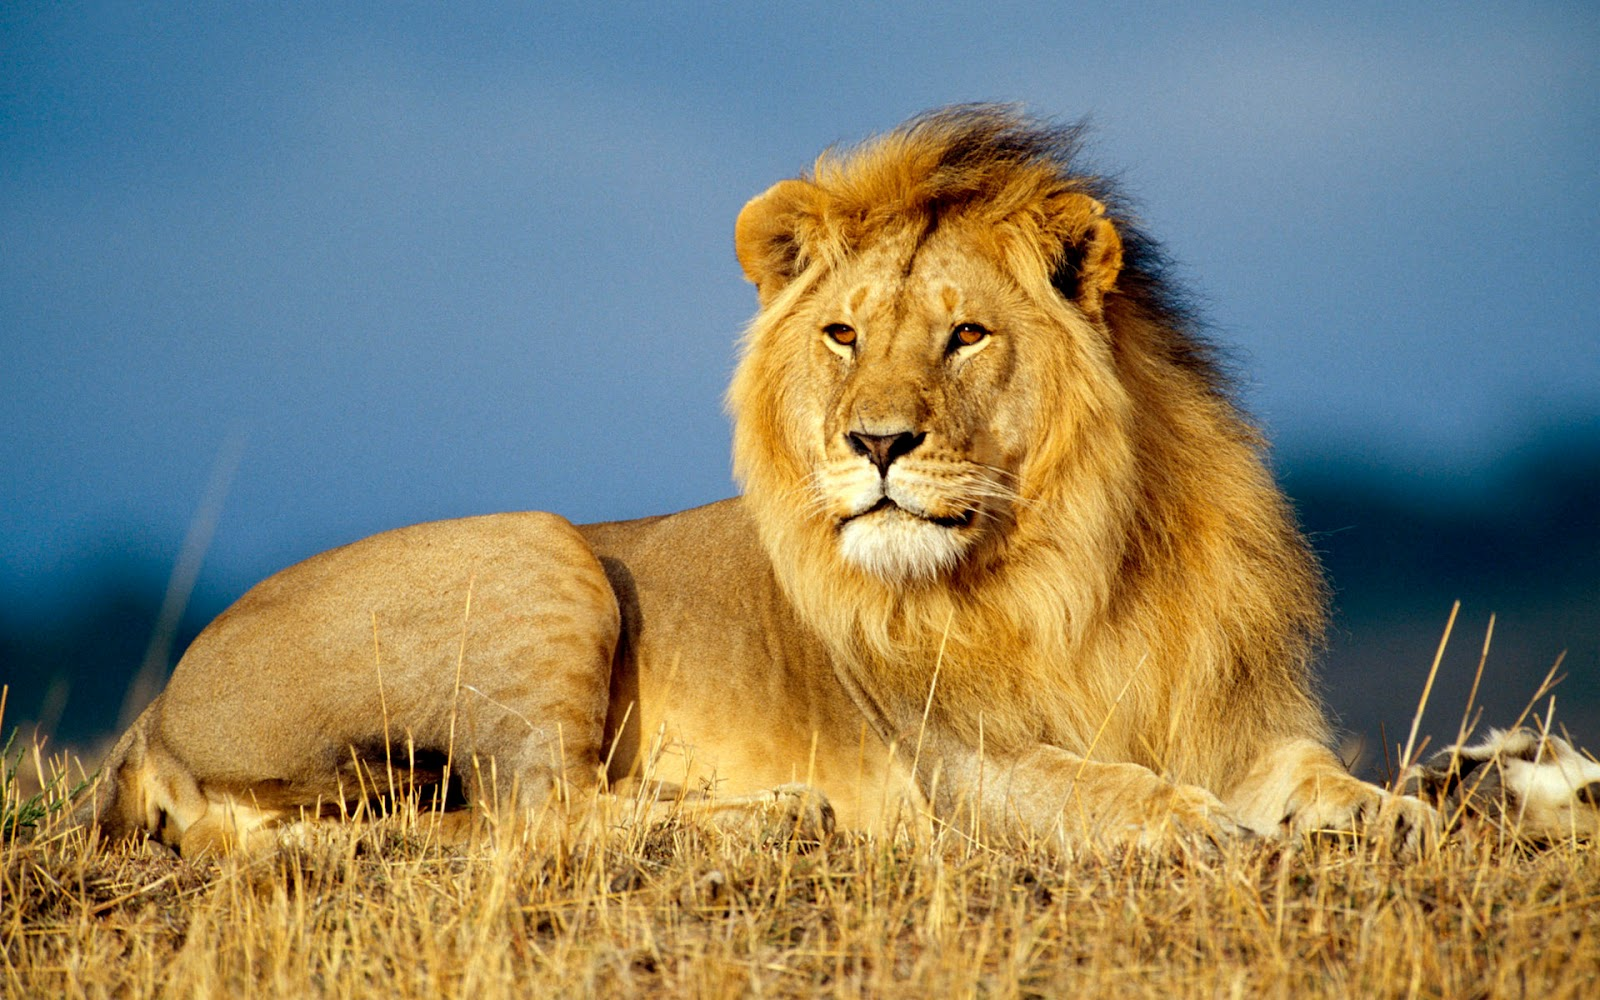 Lion HD Wallpapers African Lions Pictures - HD Animal Wallpapers